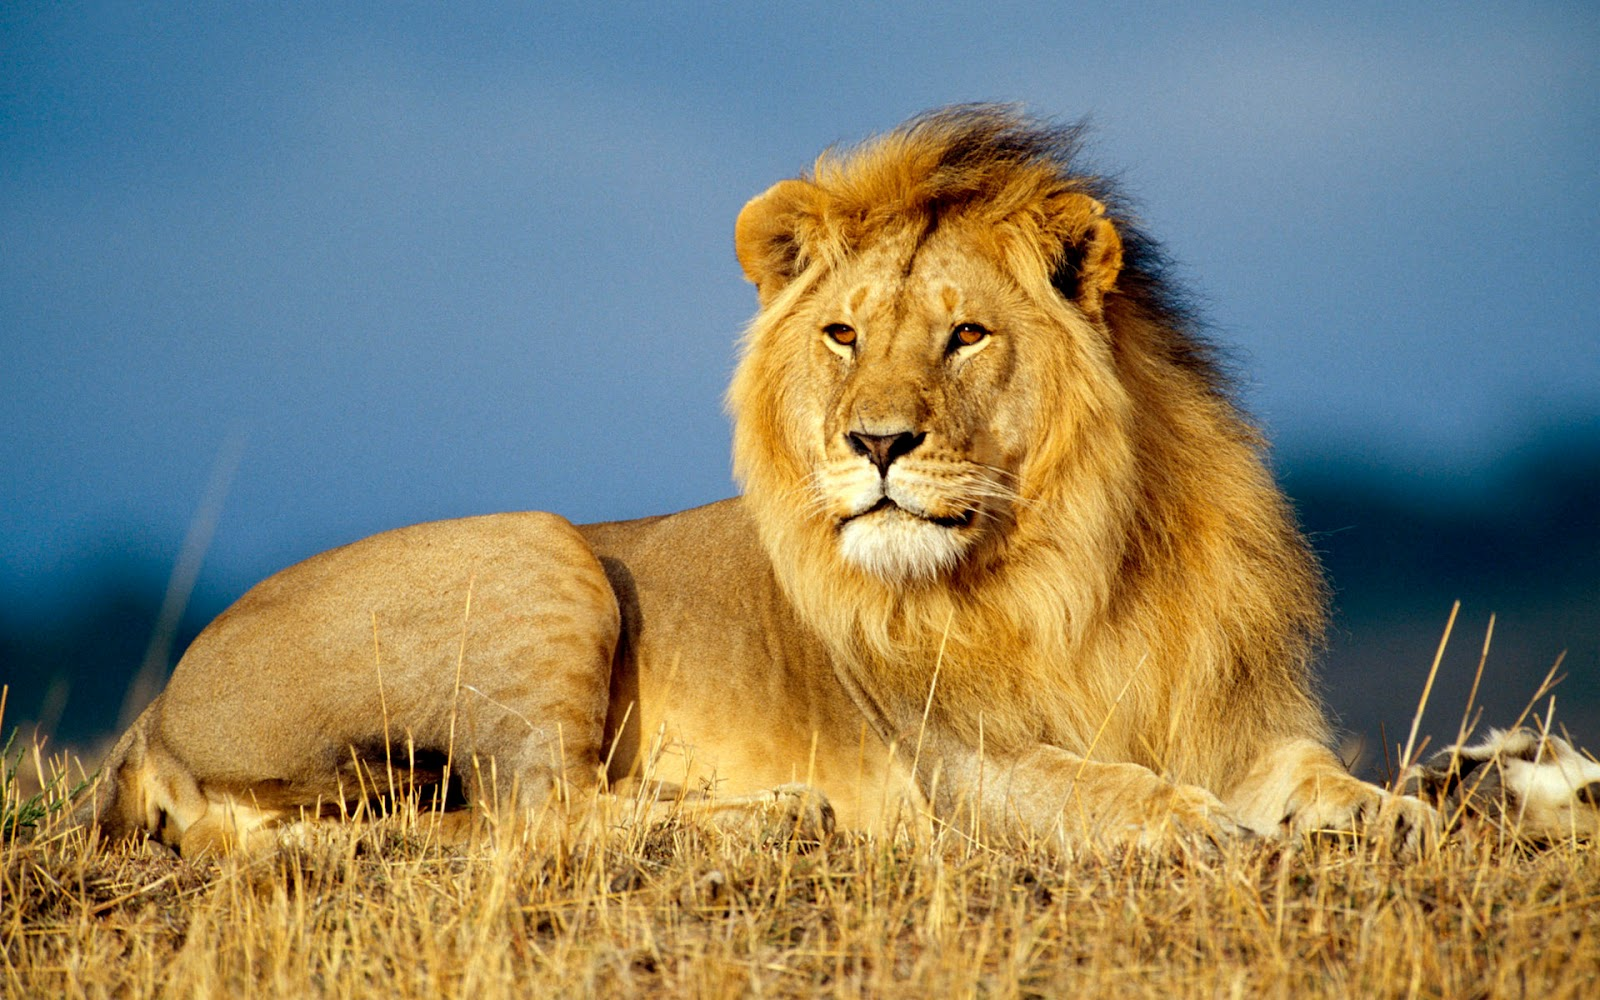 Lion HD Wallpapers African Lions Pictures - HD Animal Wallpapers